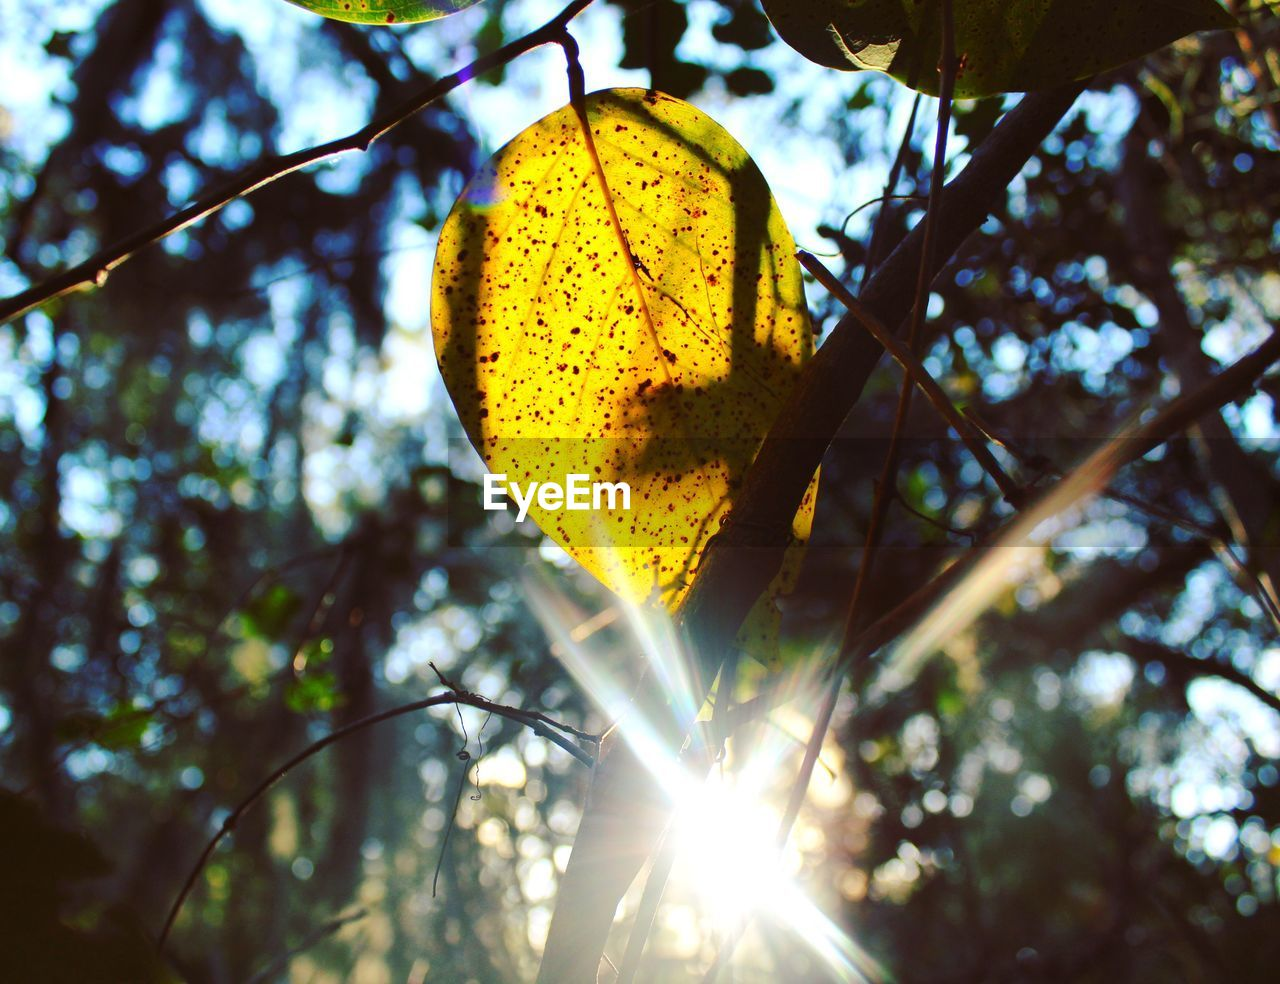 plant, tree, nature, low angle view, leaf, plant part, day, sunlight, yellow, growth, no people, close-up, sunbeam, focus on foreground, outdoors, beauty in nature, sun, autumn, branch, lens flare, change, bright